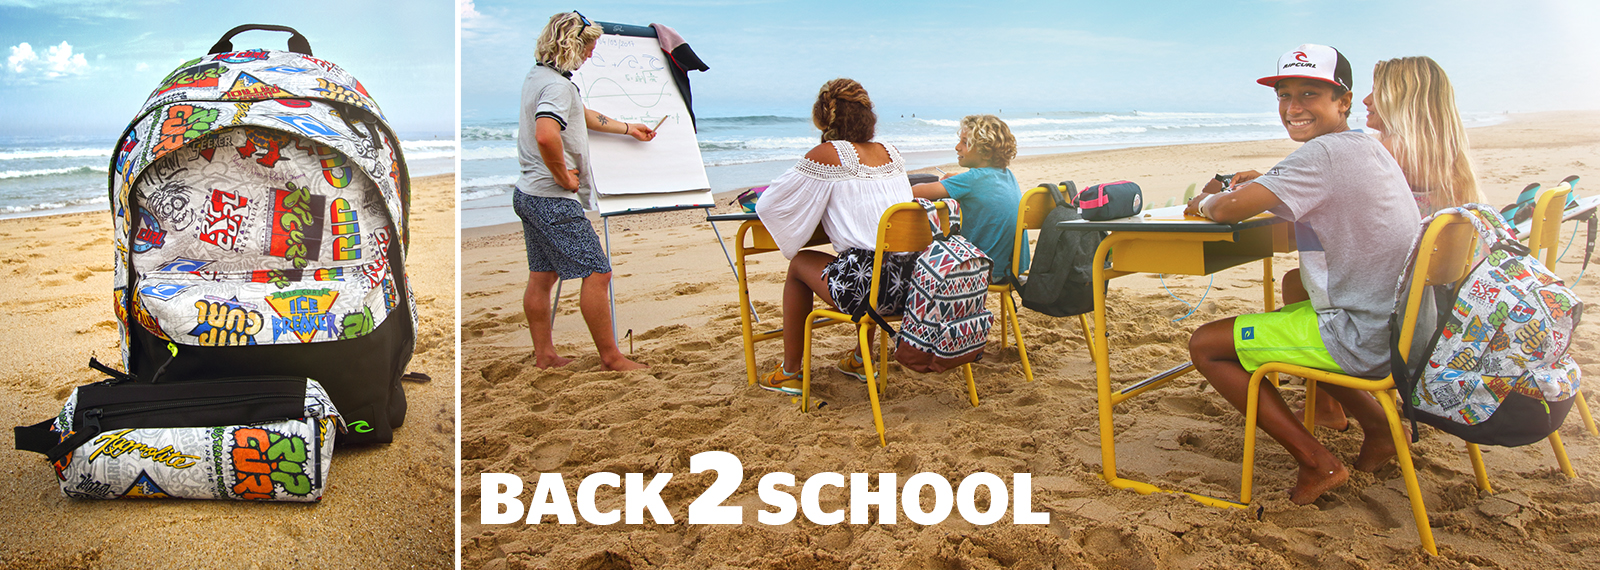 homepage_back2school